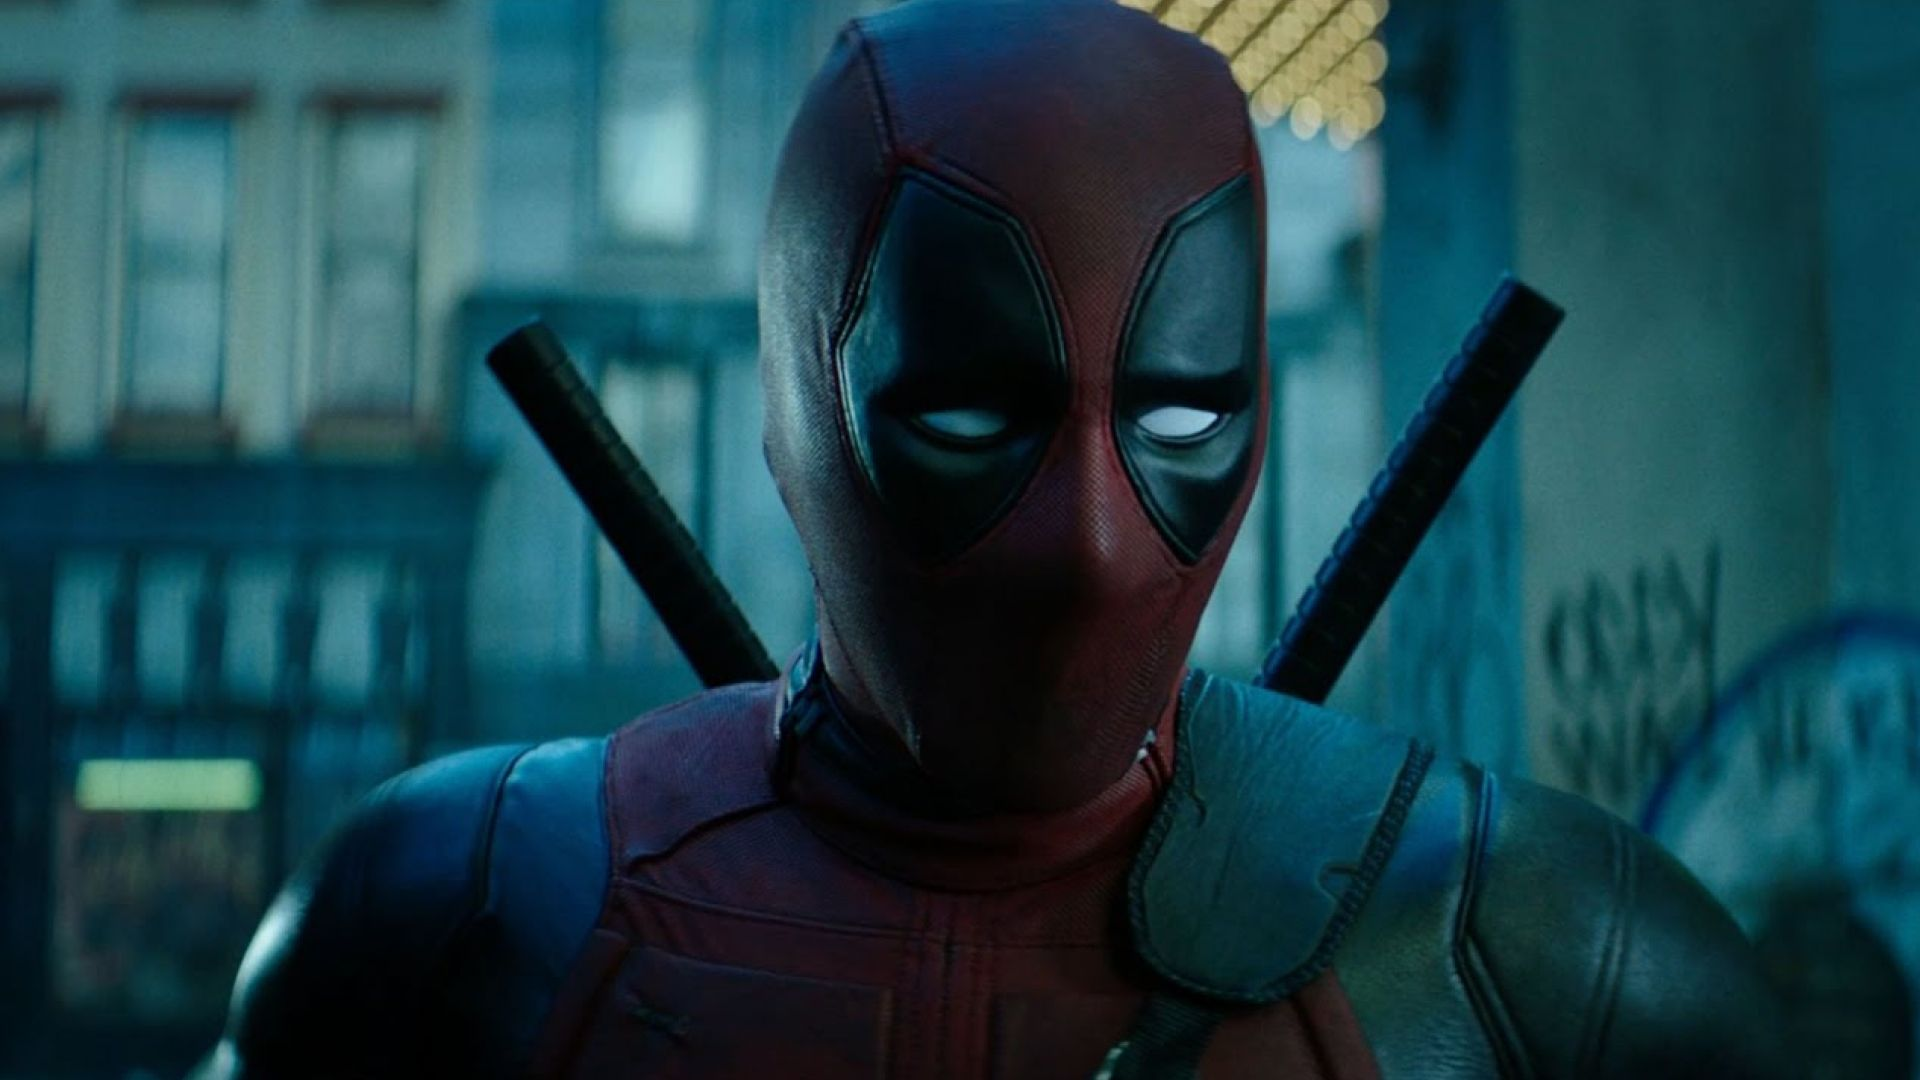 Ryan Reynolds suits up in the hilarious teaser for 'Deadpool